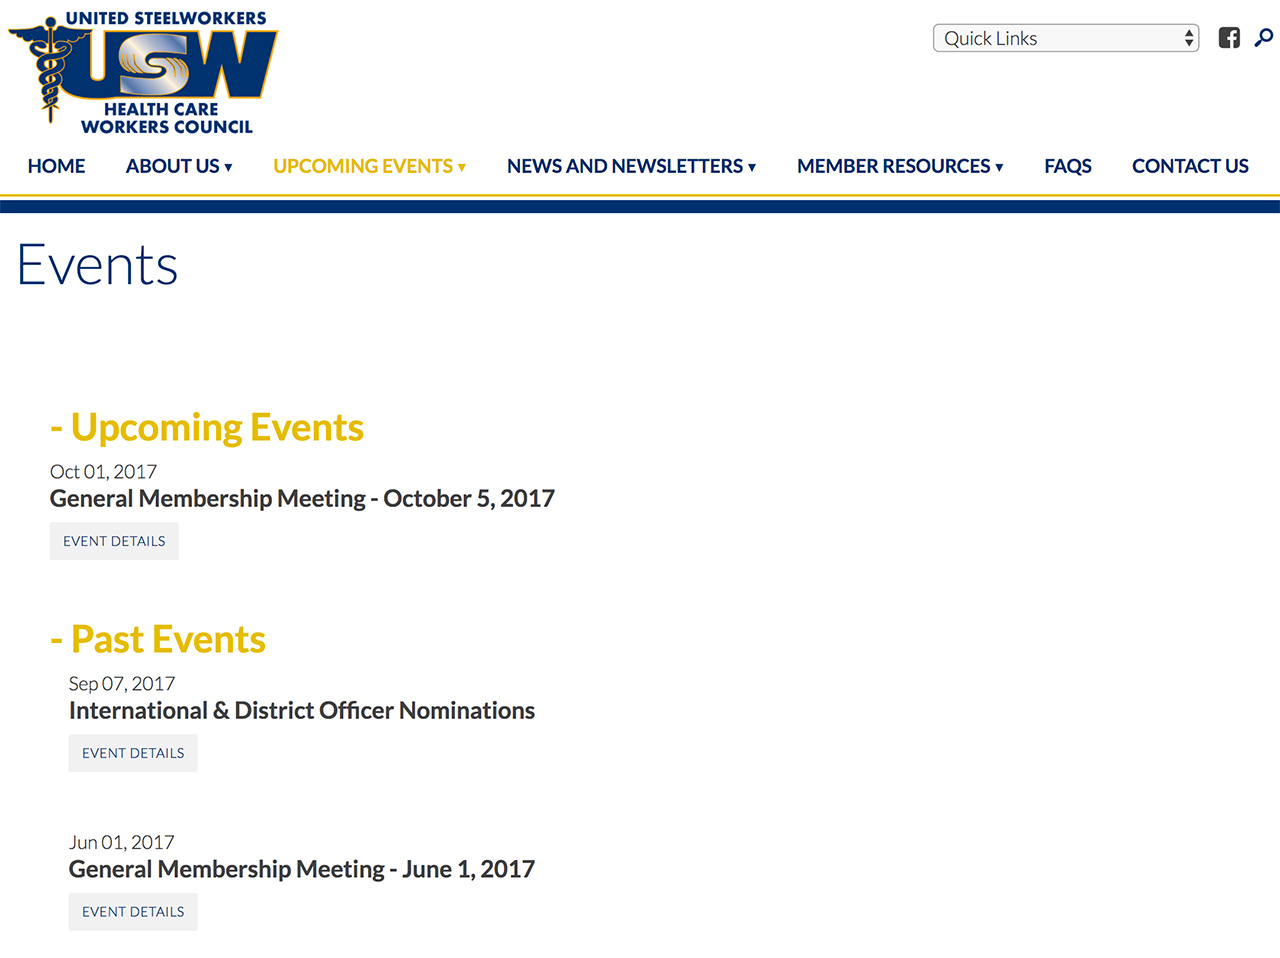 United Steelworkers Local 4-200: Automatically Sorted Past and Upcoming Events Archive